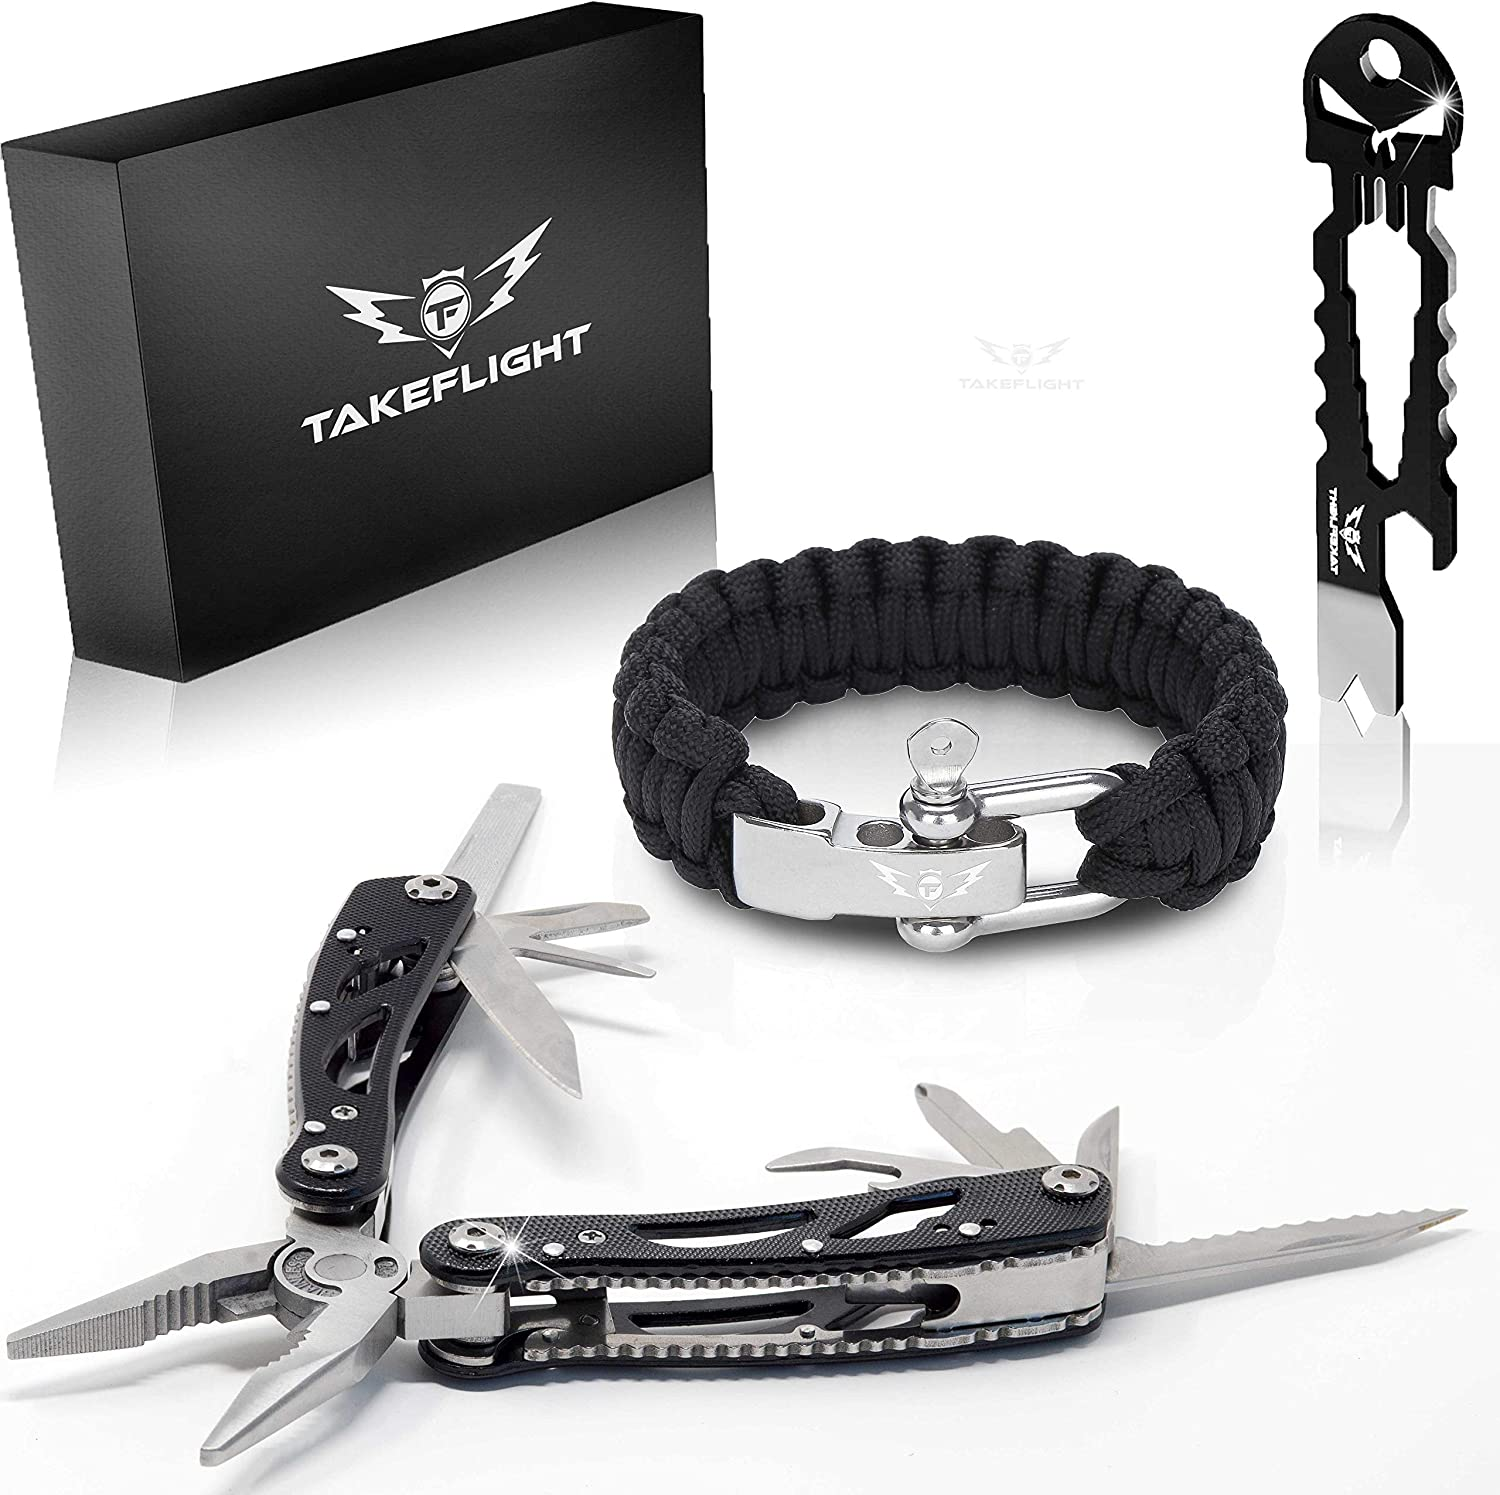 Father's Day Gift for Dad - Multi Tool Survival Gear Kit - Gadgets for Men | EDC Gift Set w/Paracord...